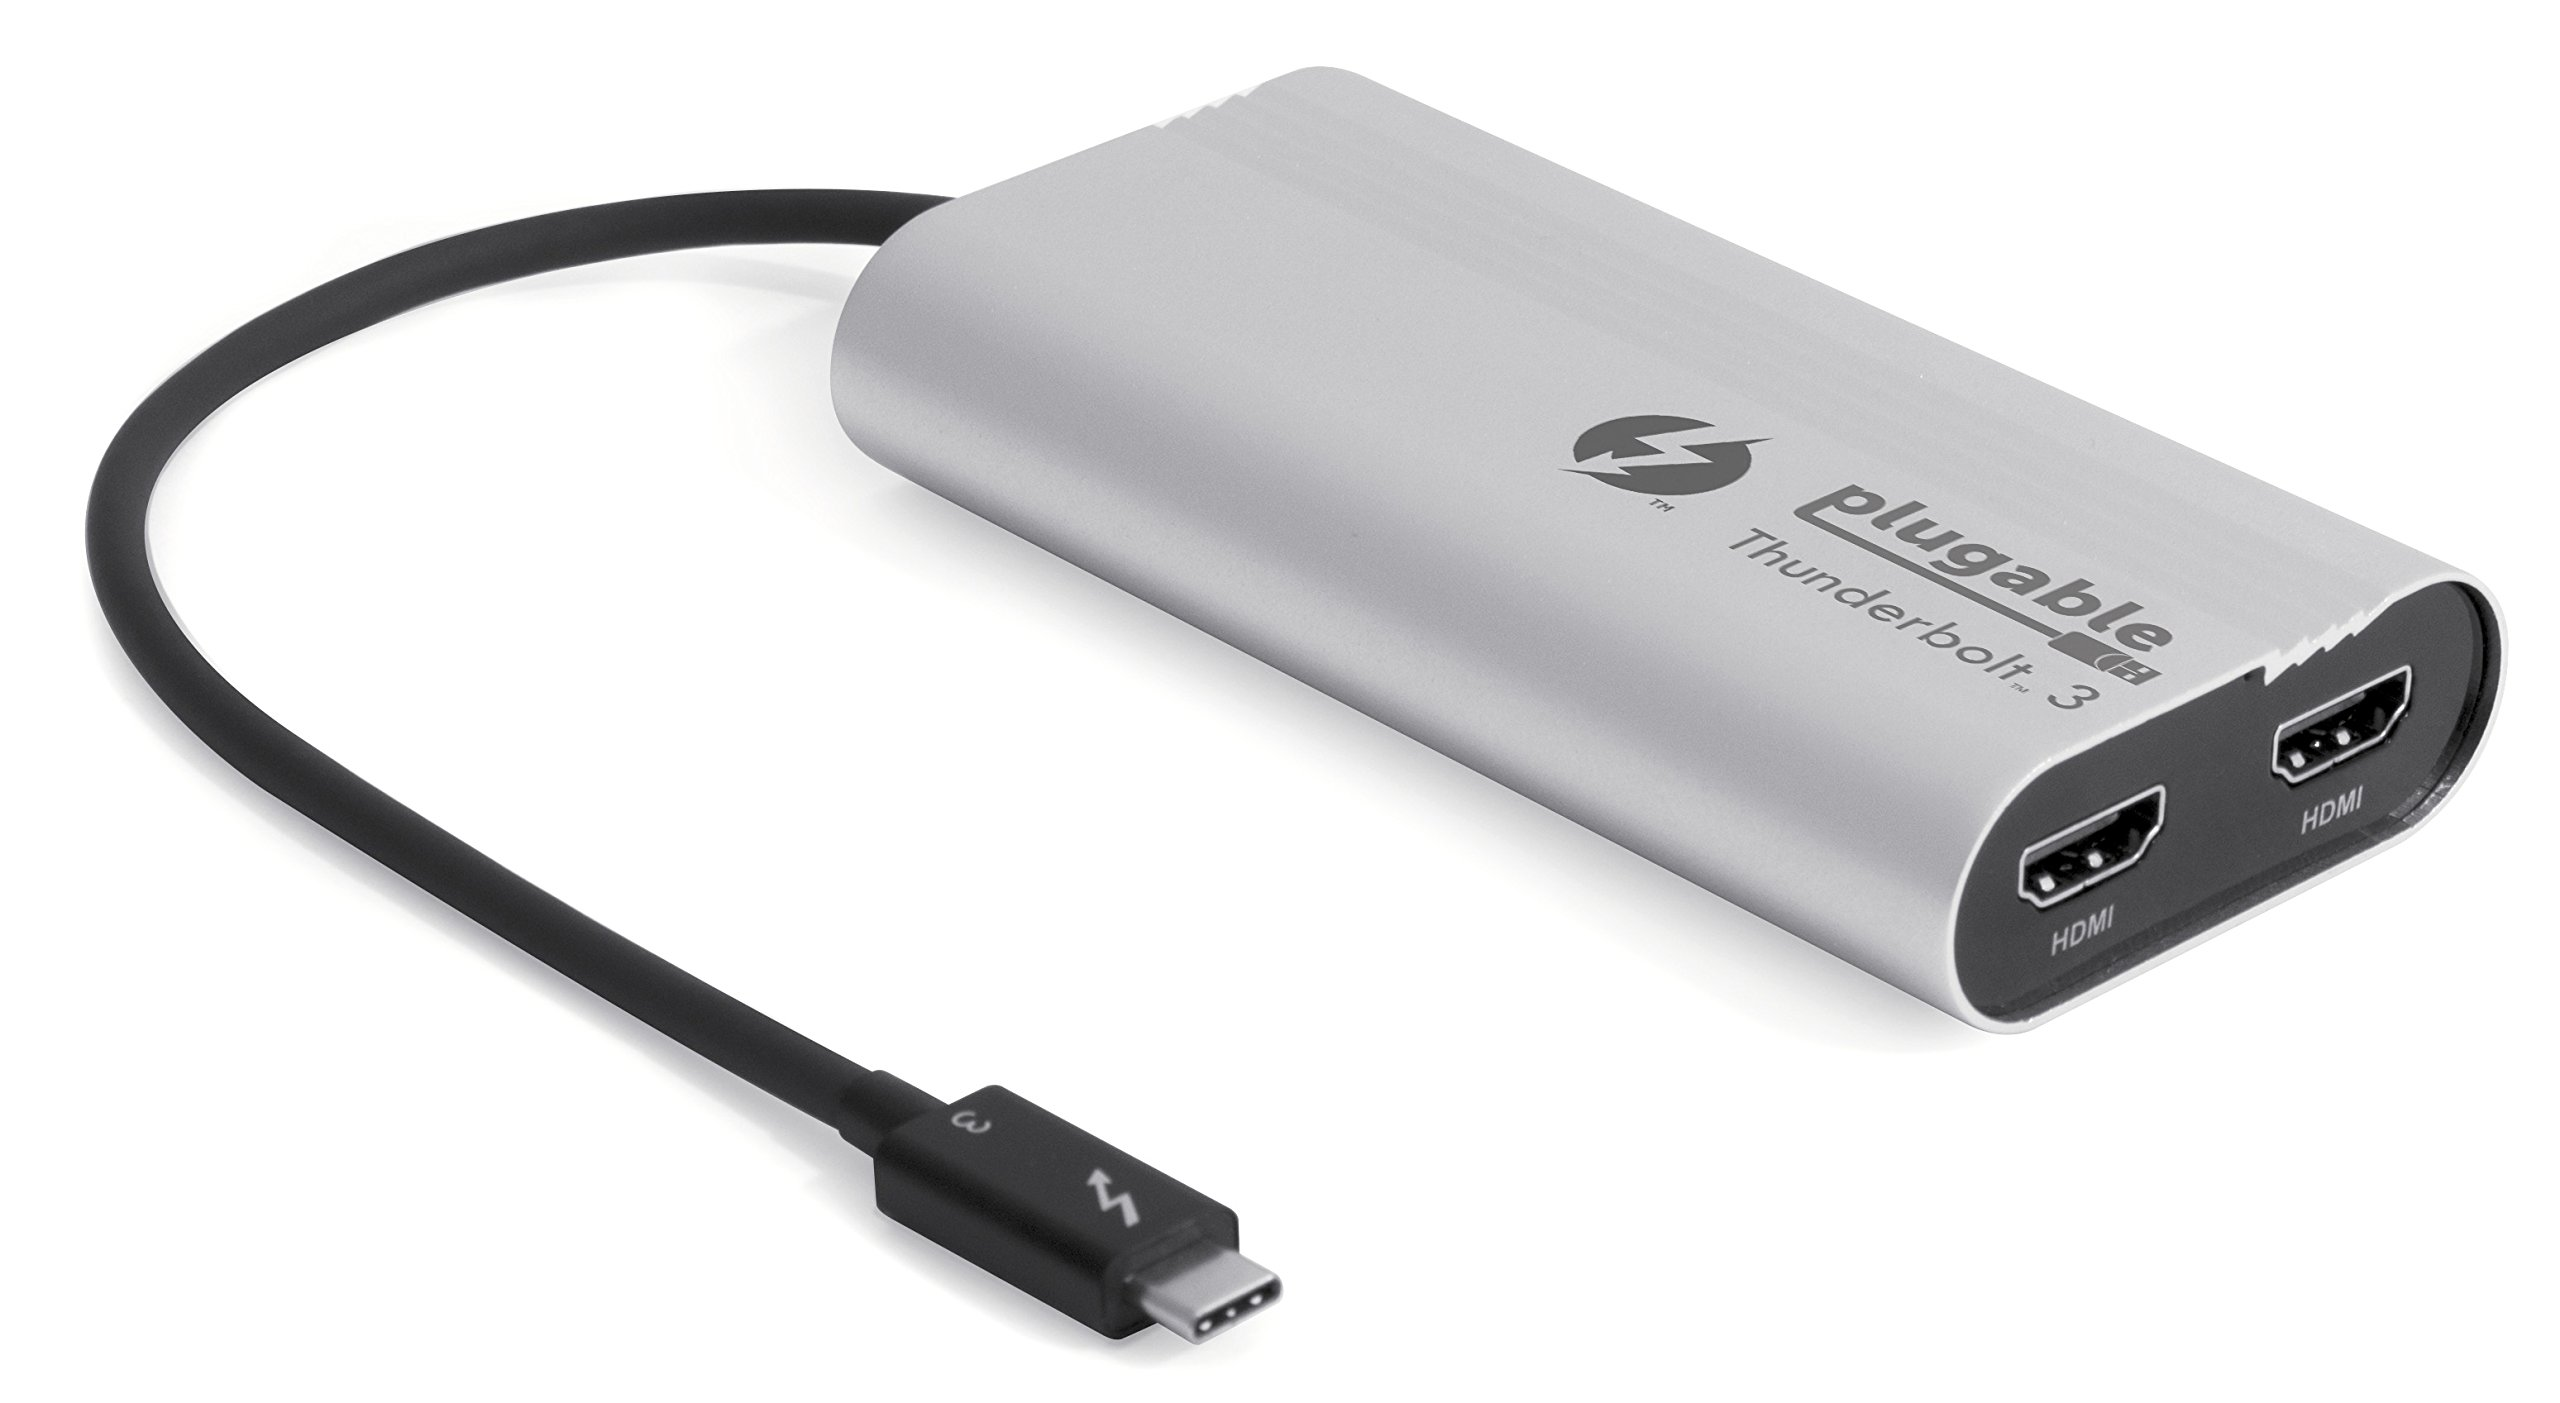 Plugable Thunderbolt 3 to Dual HDMI 2.0 Display Adapter for Thunderbolt 3 Apple Mac & Select Windows Systems (Supports Up to Two 4K 60Hz Monitors)